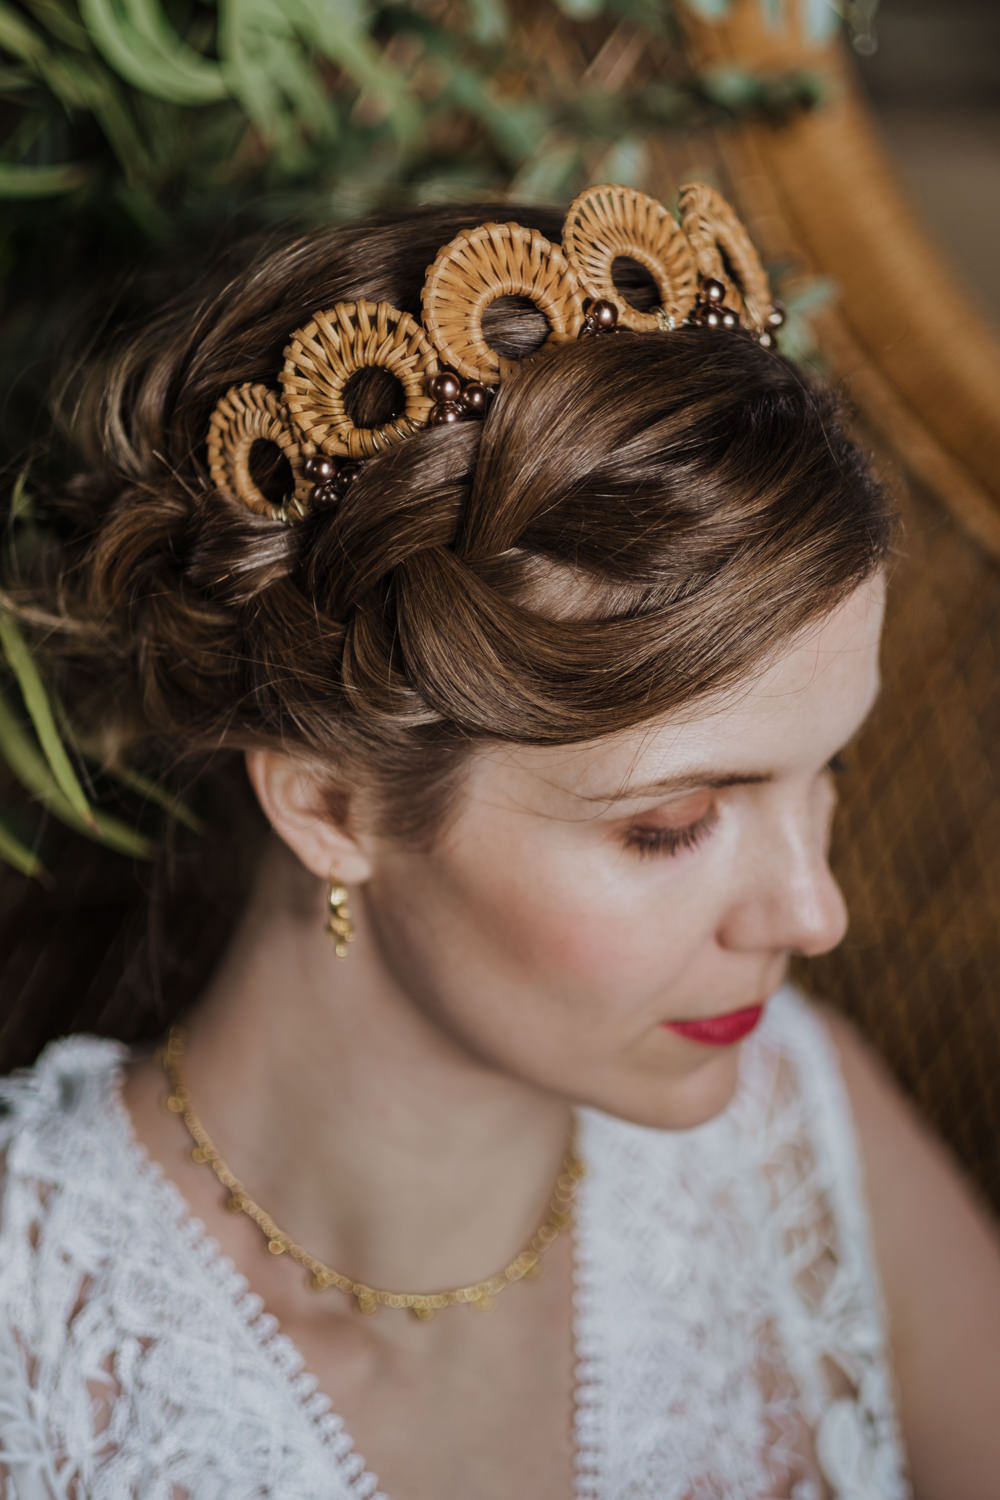 Bride Bridal Hair Style Up Do Halo Plait Crown Tiara Accessory Ethical Wedding Ideas Jenna Kathleen Photographer